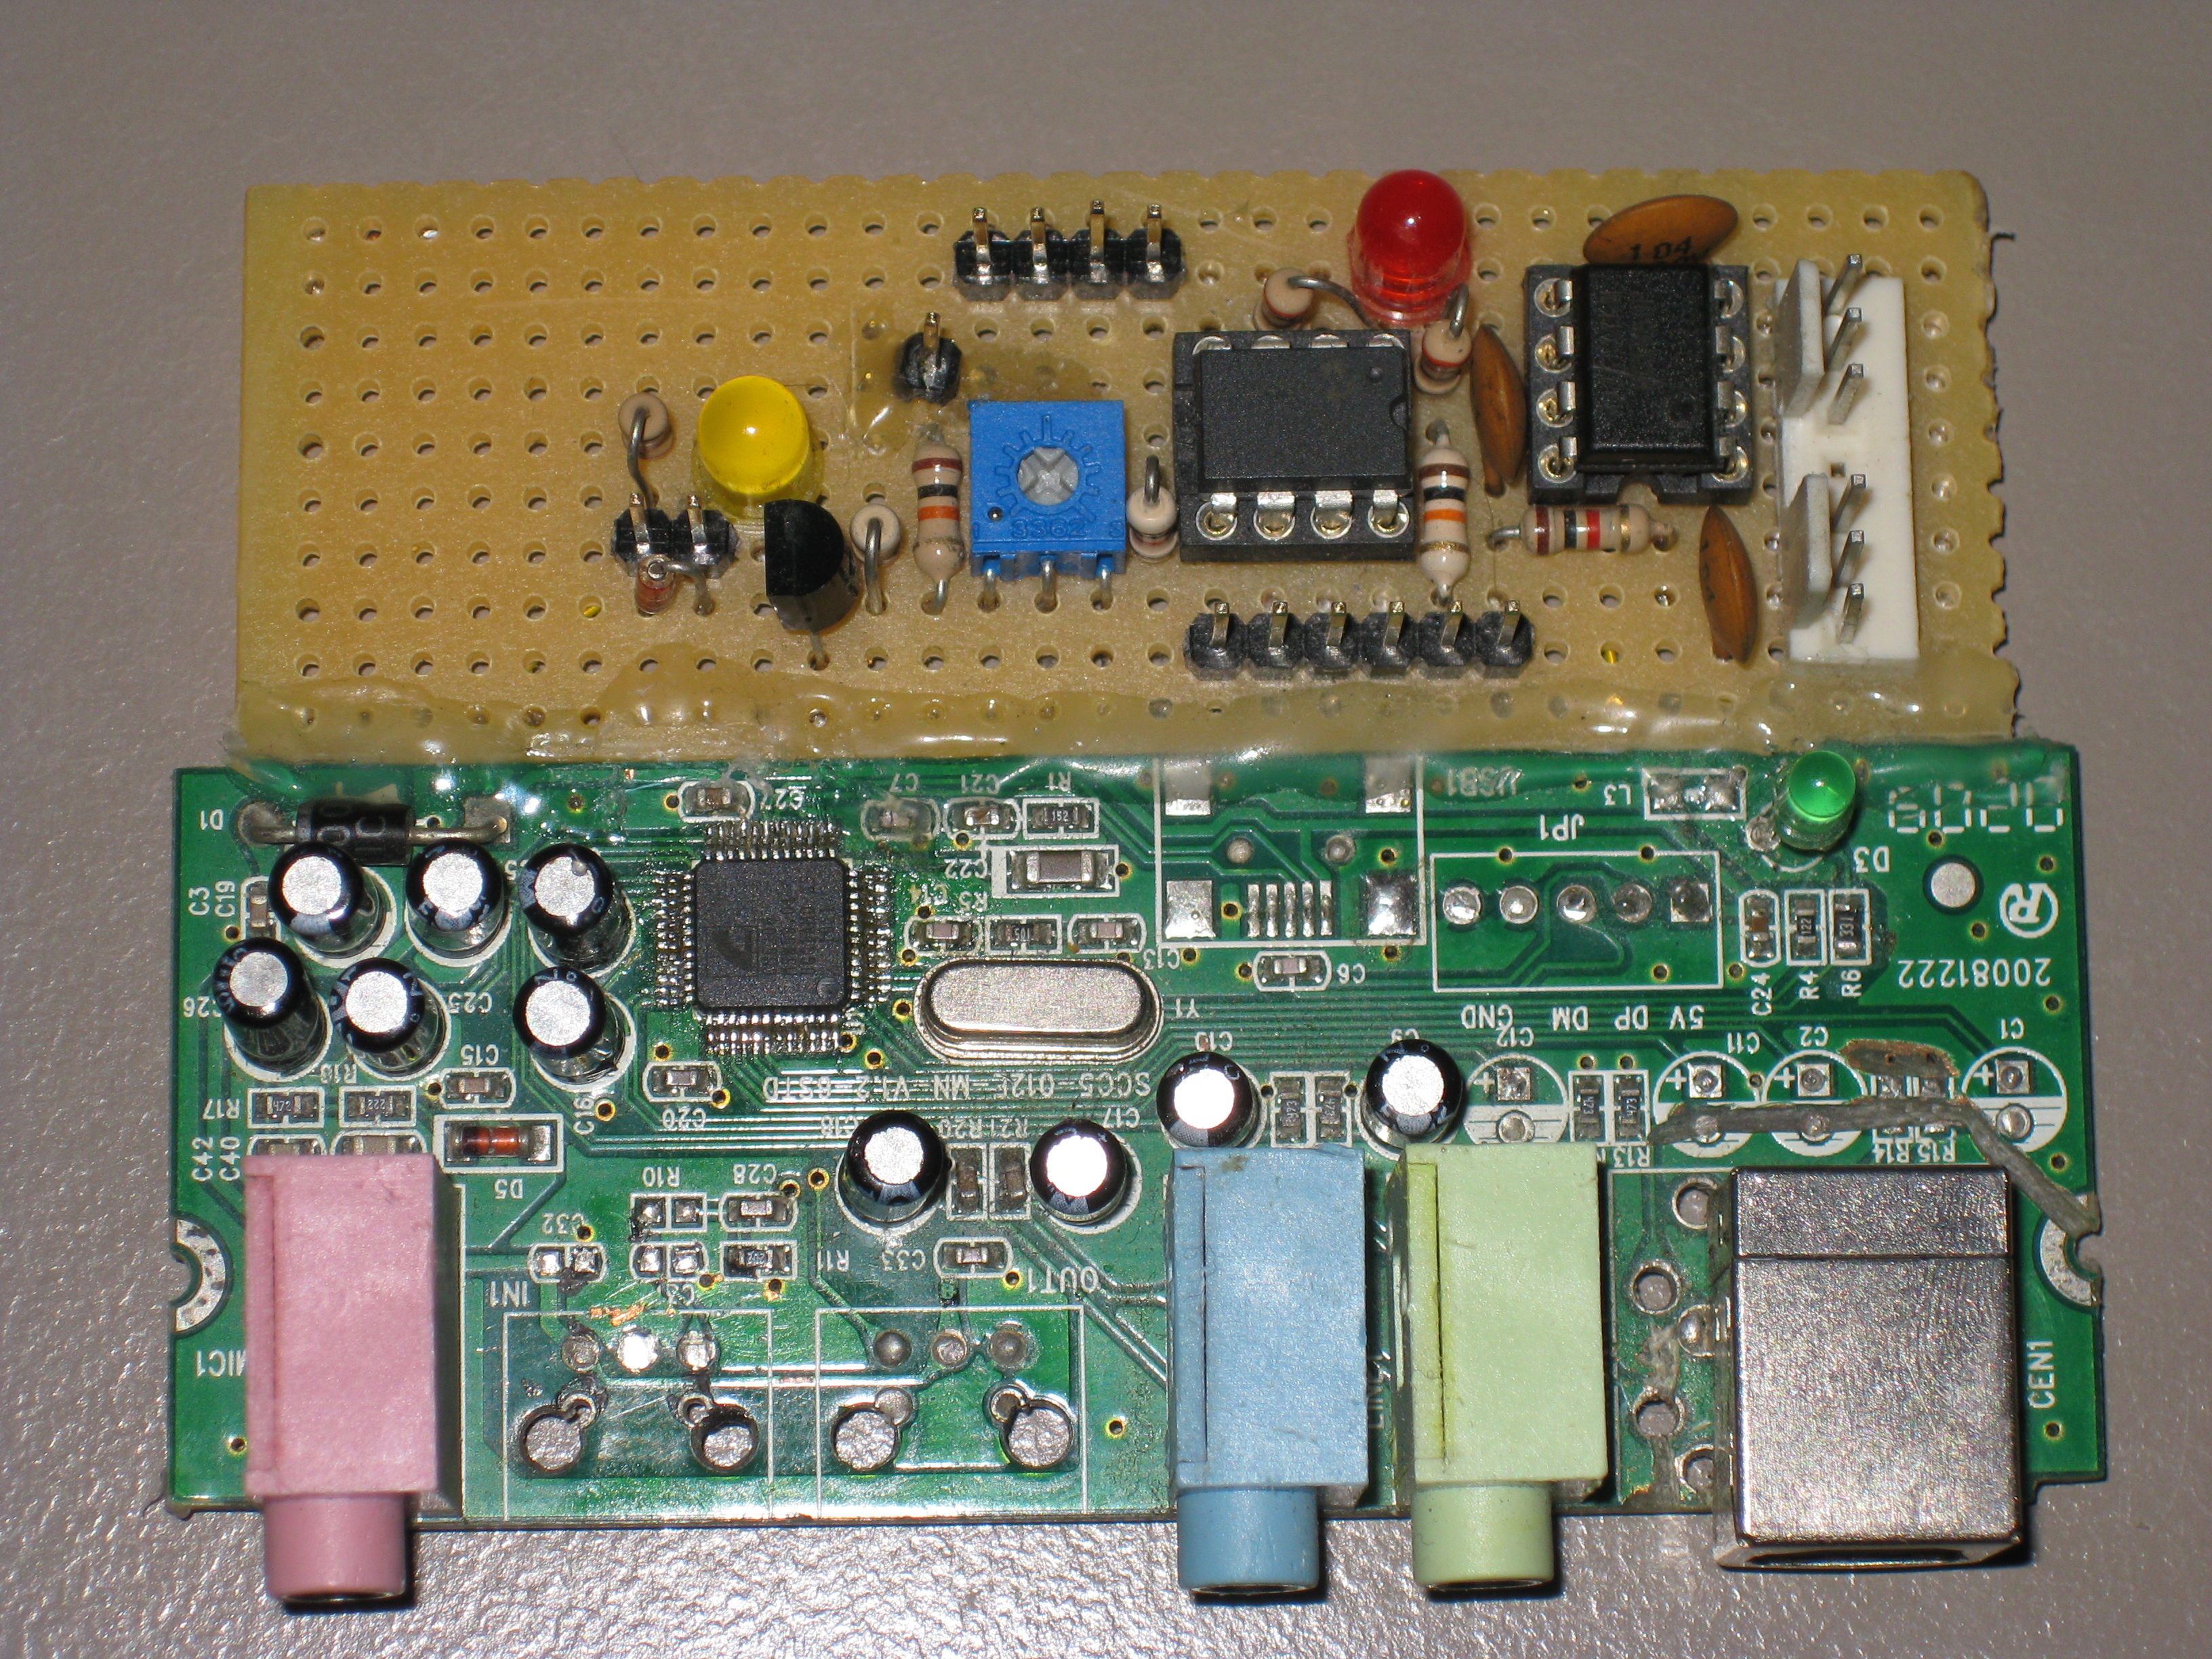 Openlase Hardware Mark 1 Connection Running Explicitly From The Power Supply To Opamp Dac Board